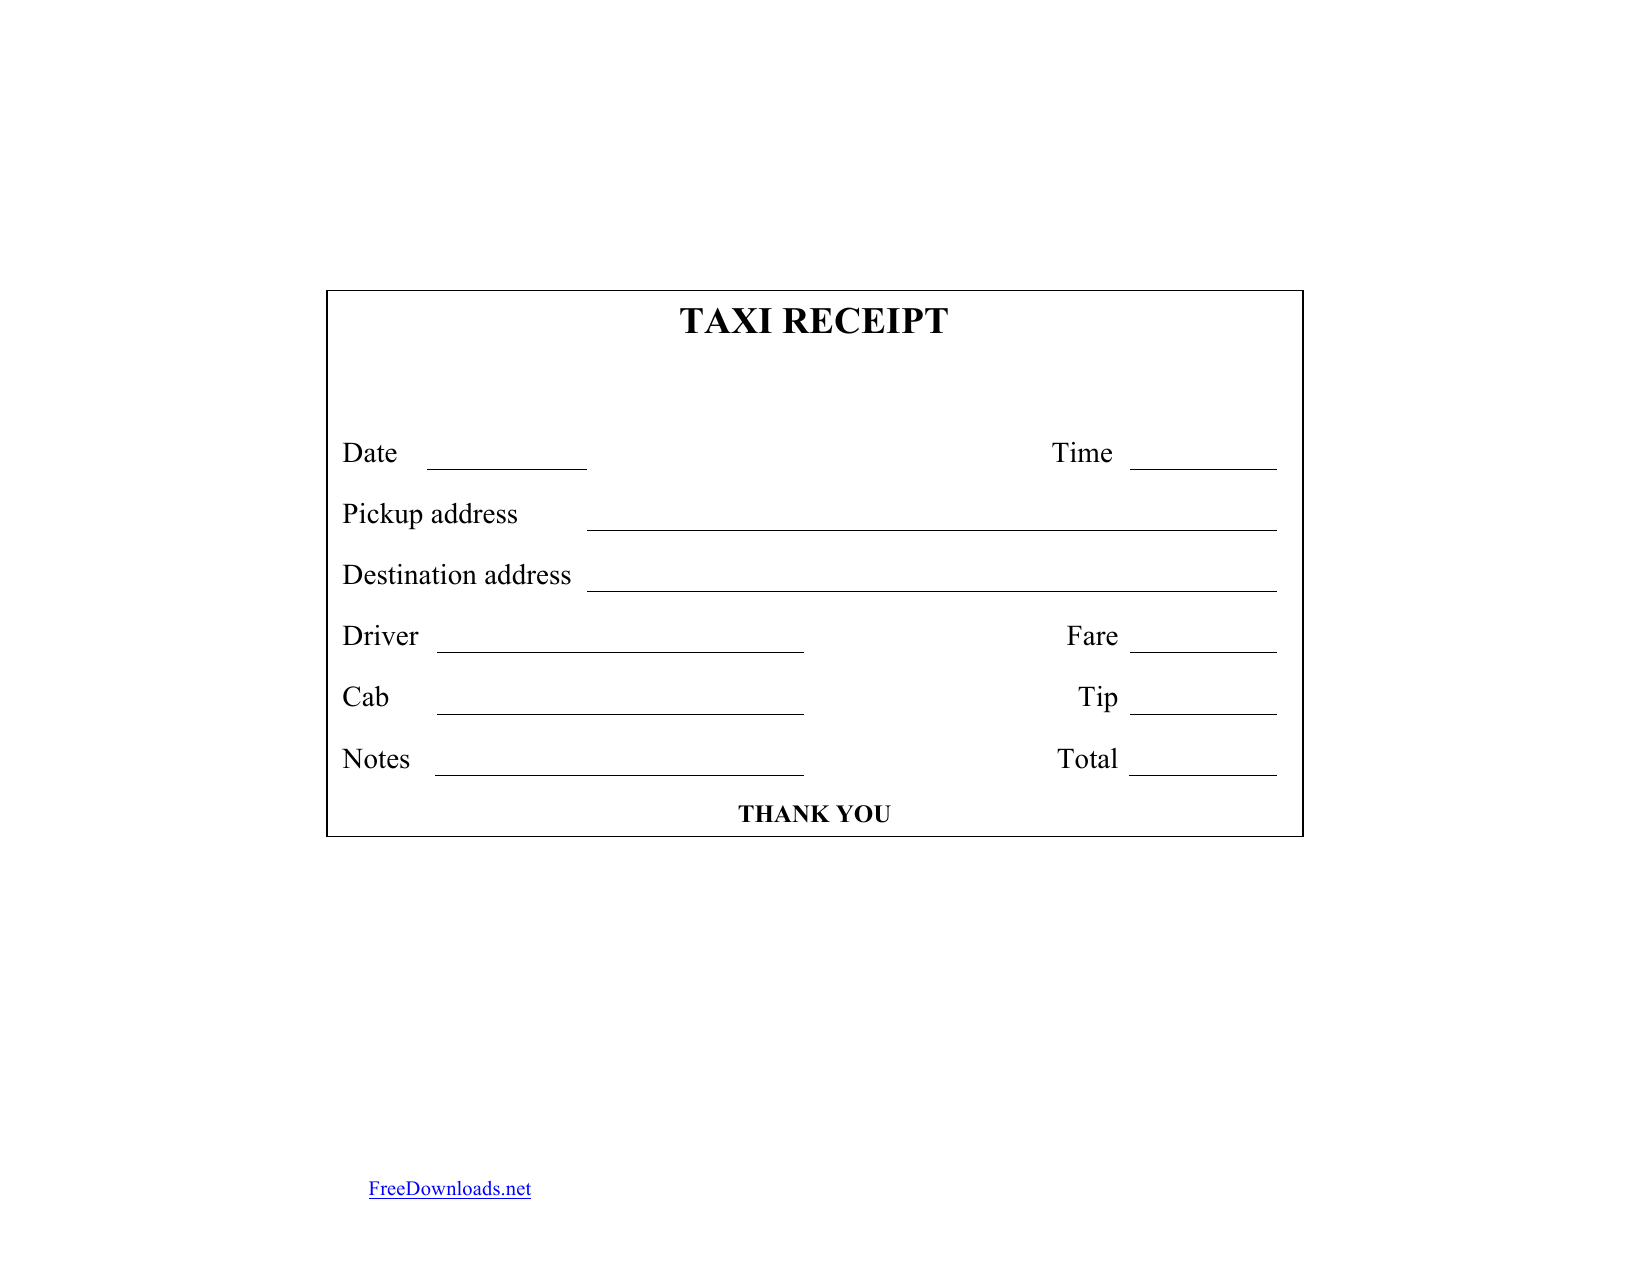 Download Blank Printable Taxi Cab Receipt Template Excel